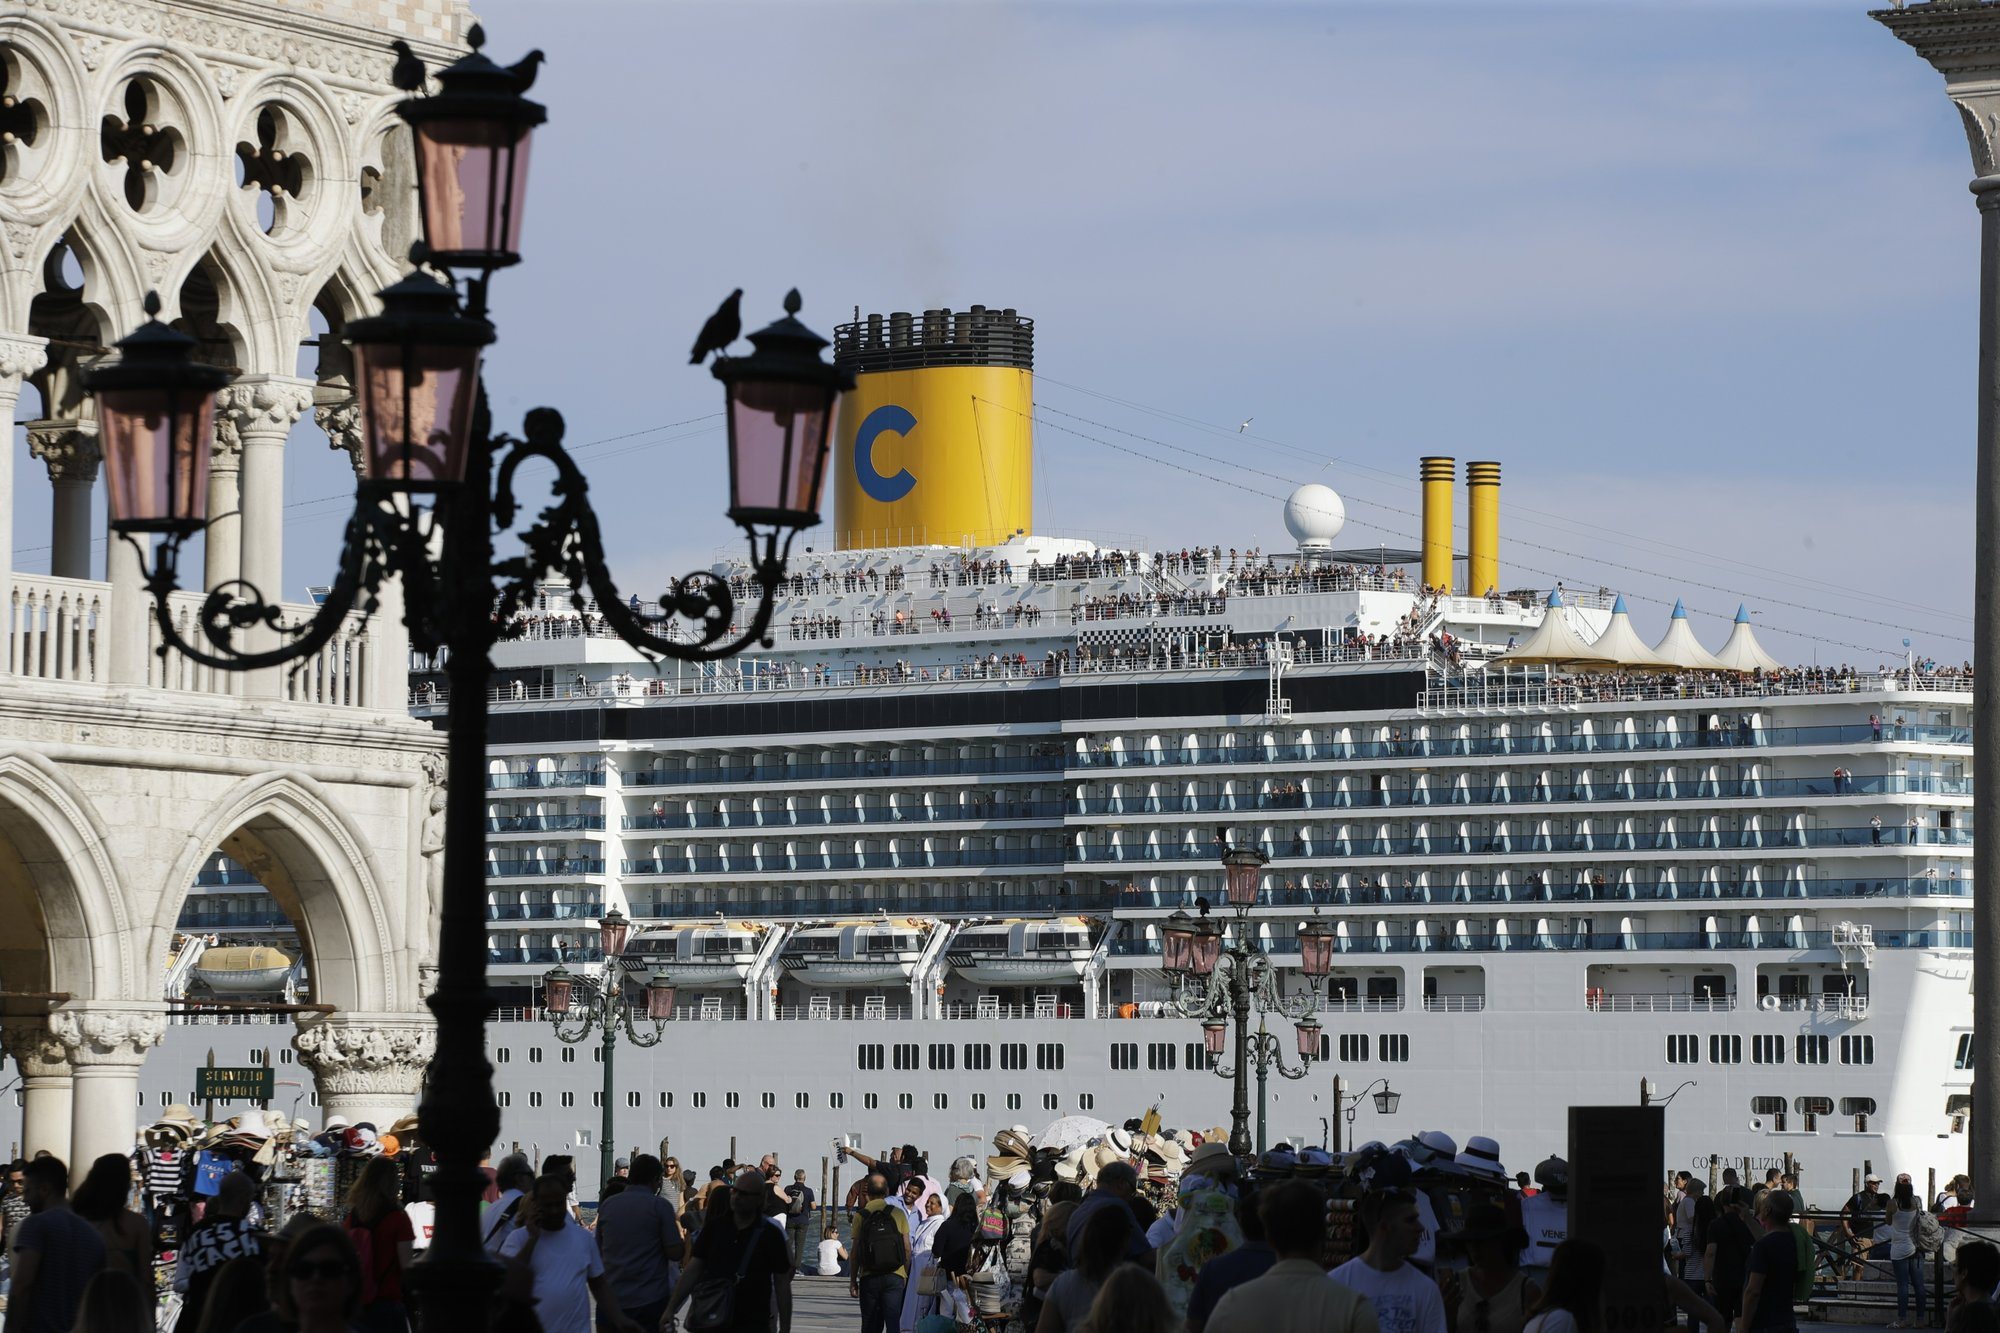 5 injured in Venice as cruise ship slams into tourist boat